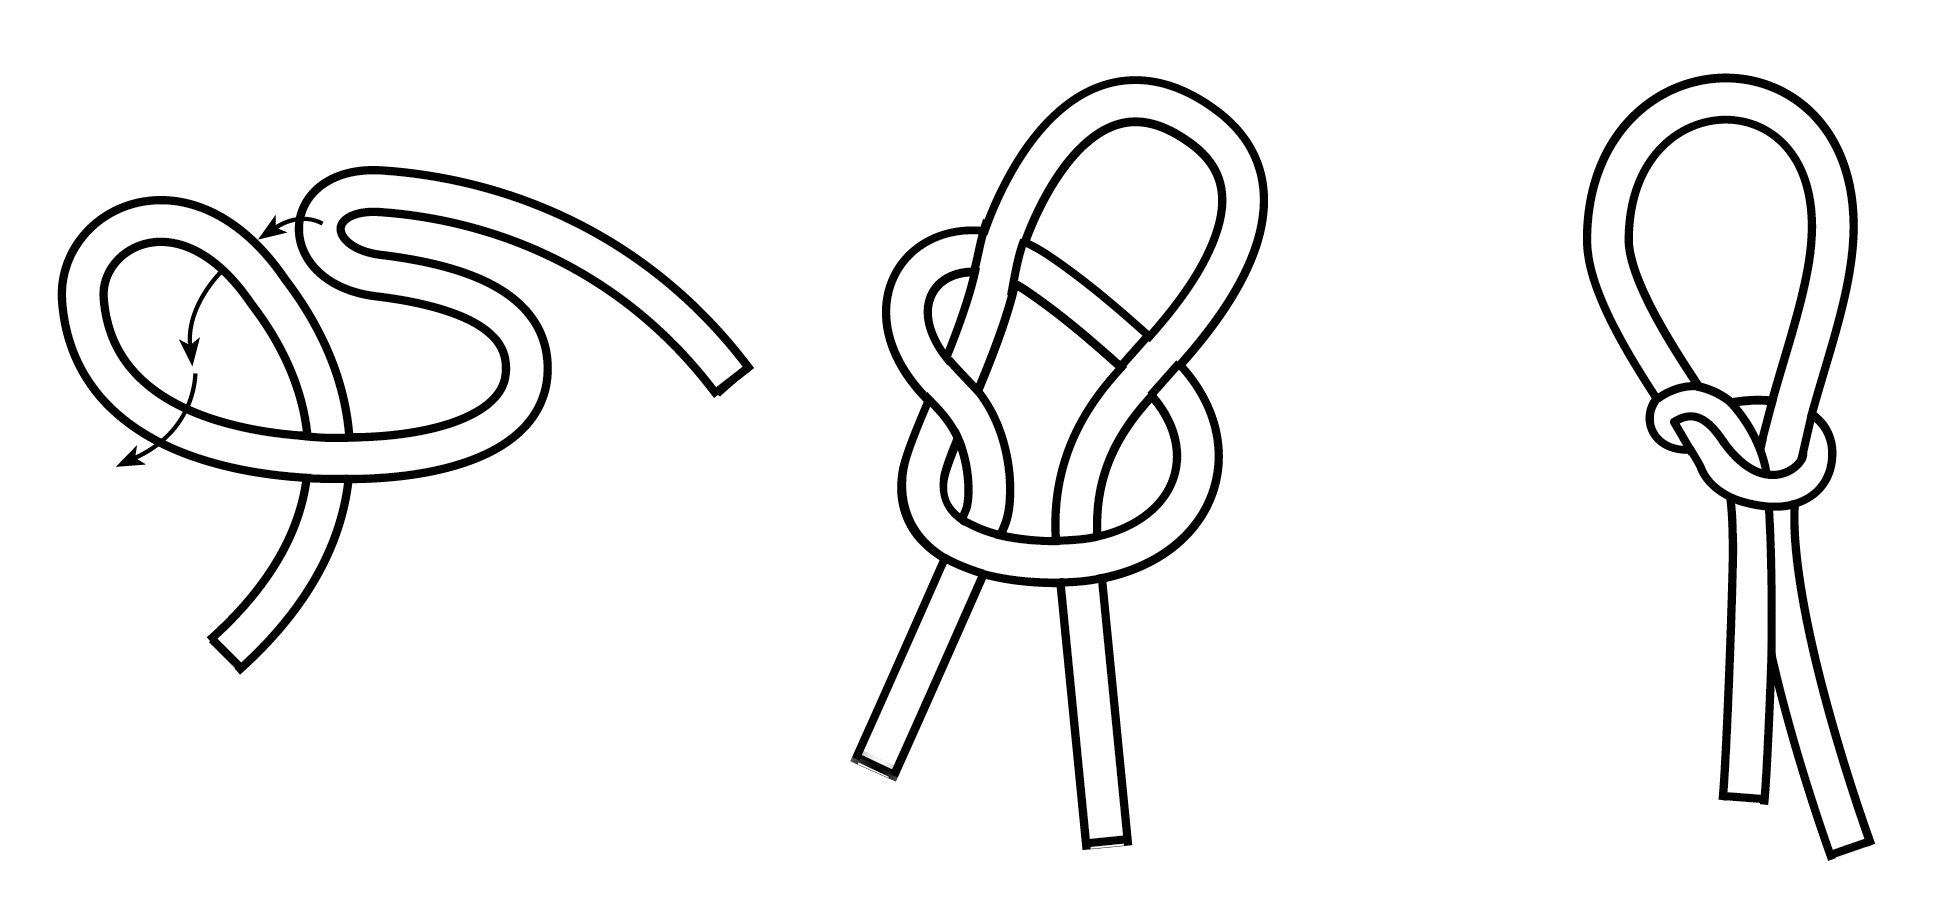 A diagram showing how a snare is tied.